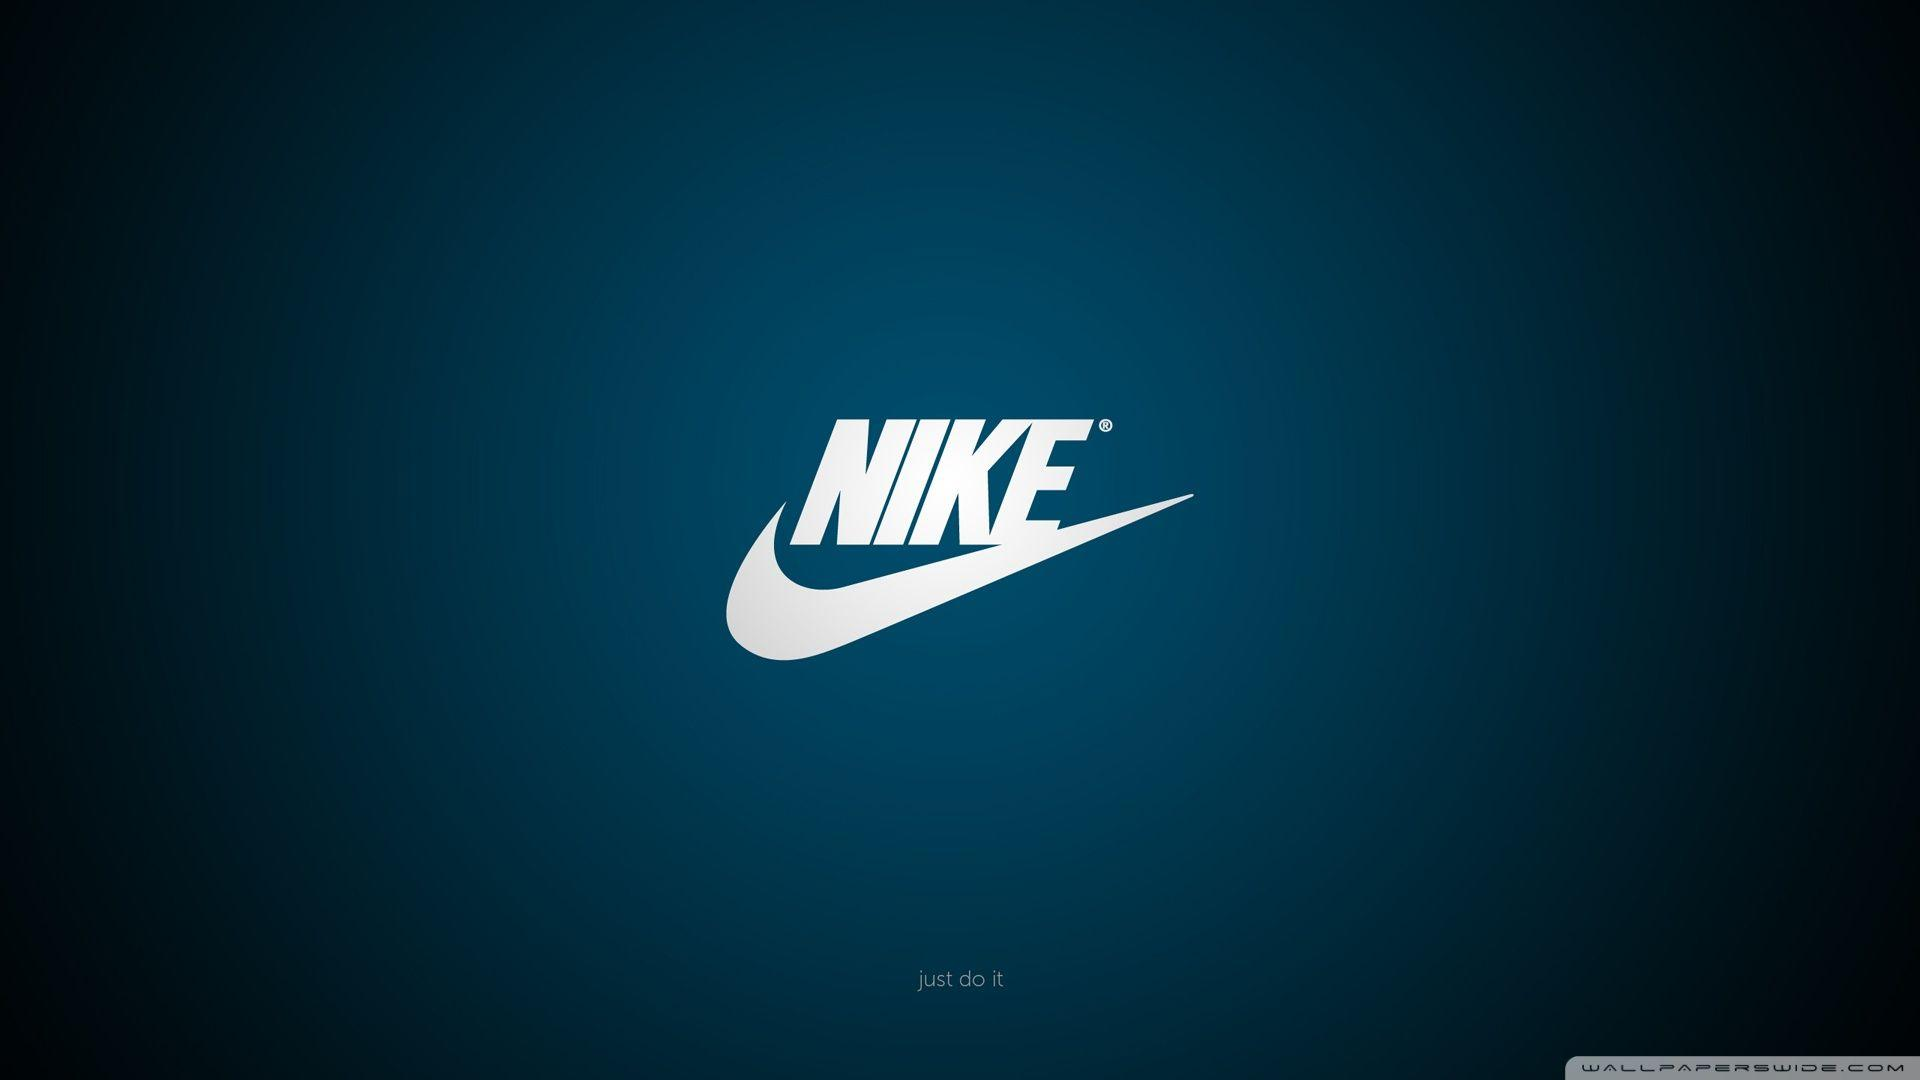 Nike 3d wallpapers wallpaper cave - Nike wallpaper hd ...